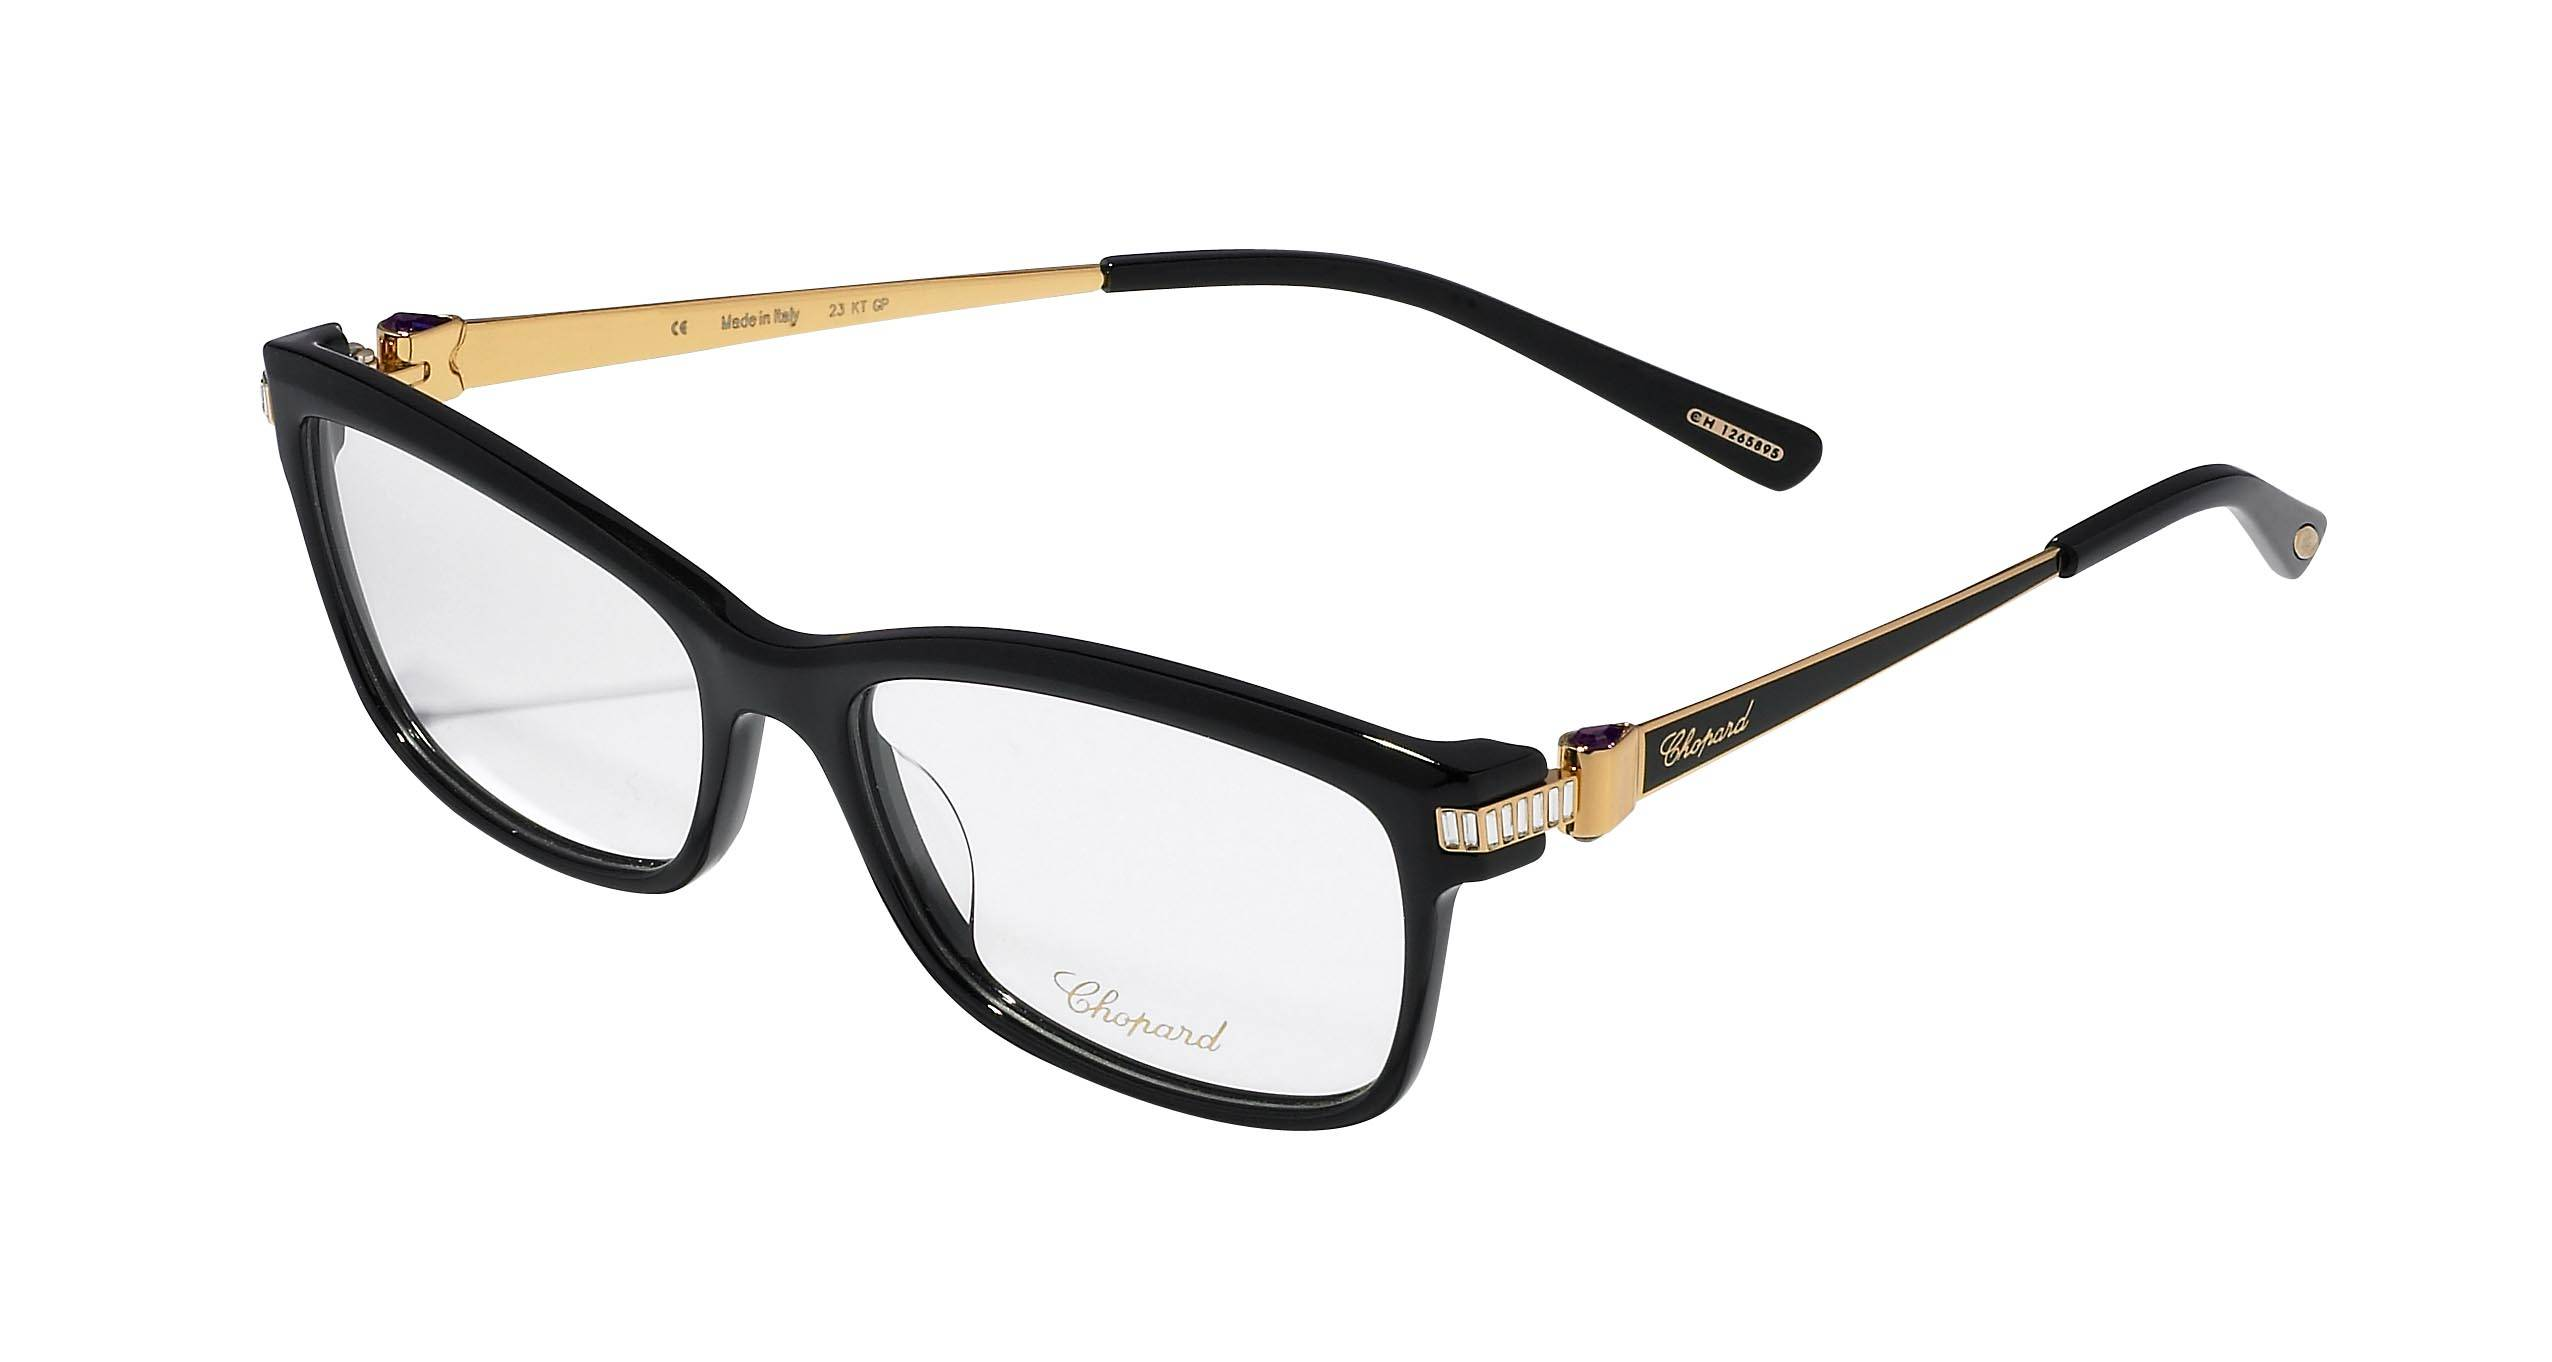 Real Gold Glasses Frames : Chopard Glasses in Hutton